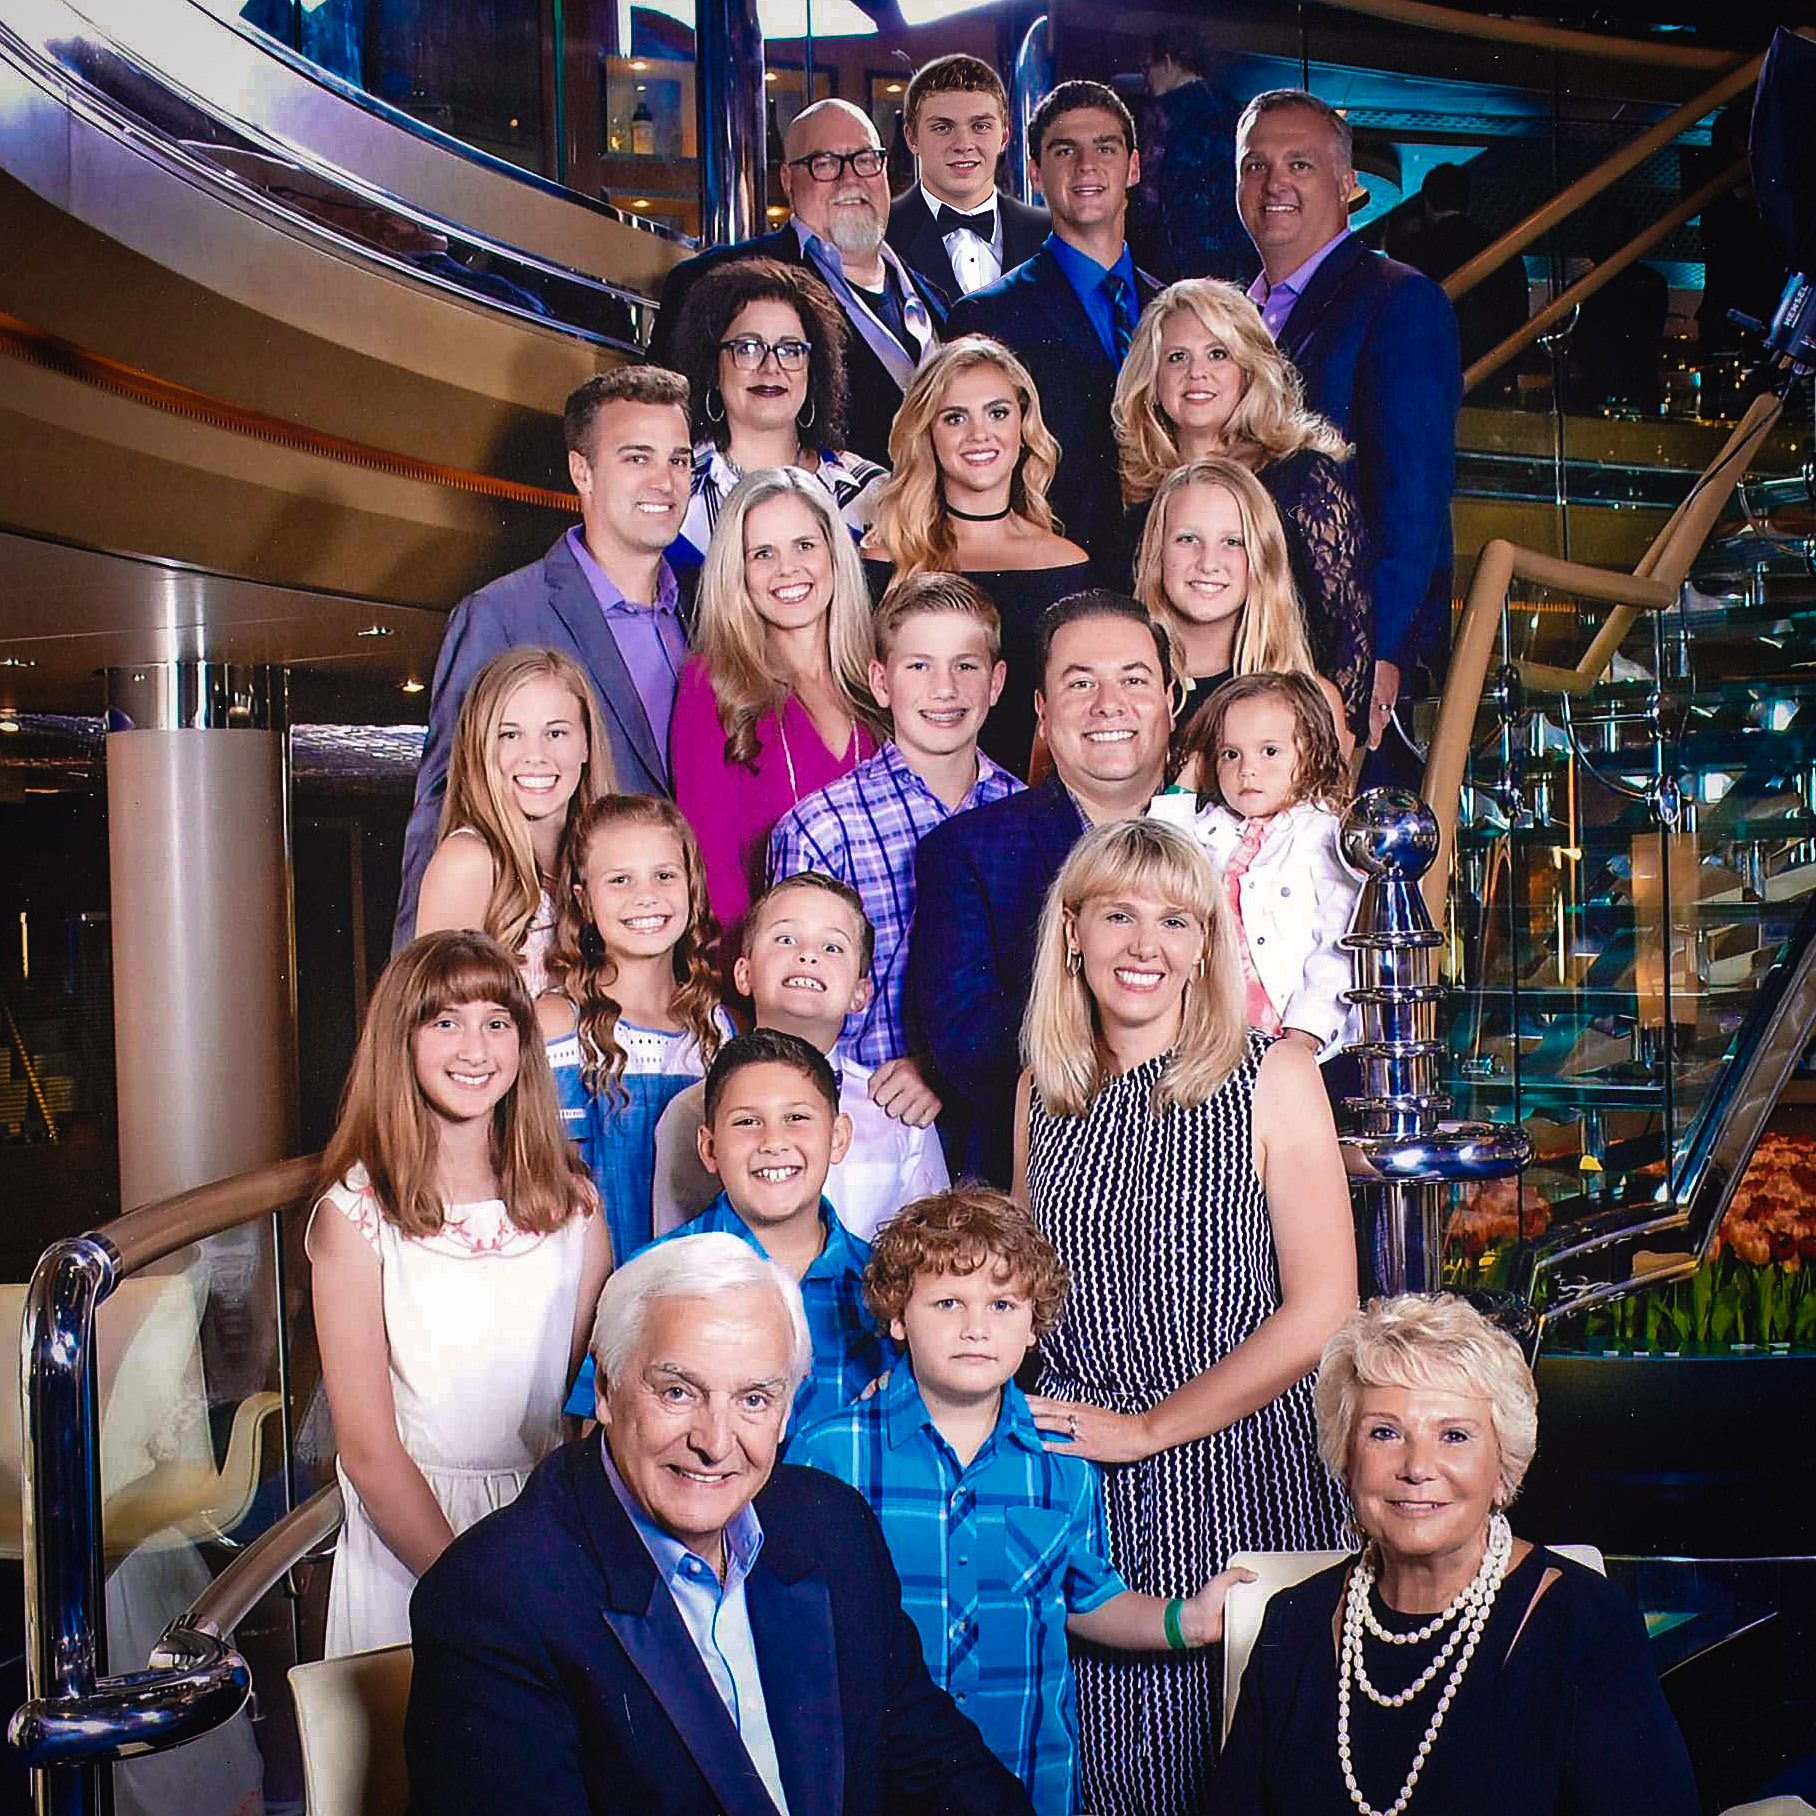 Dr David Jeremiah and family